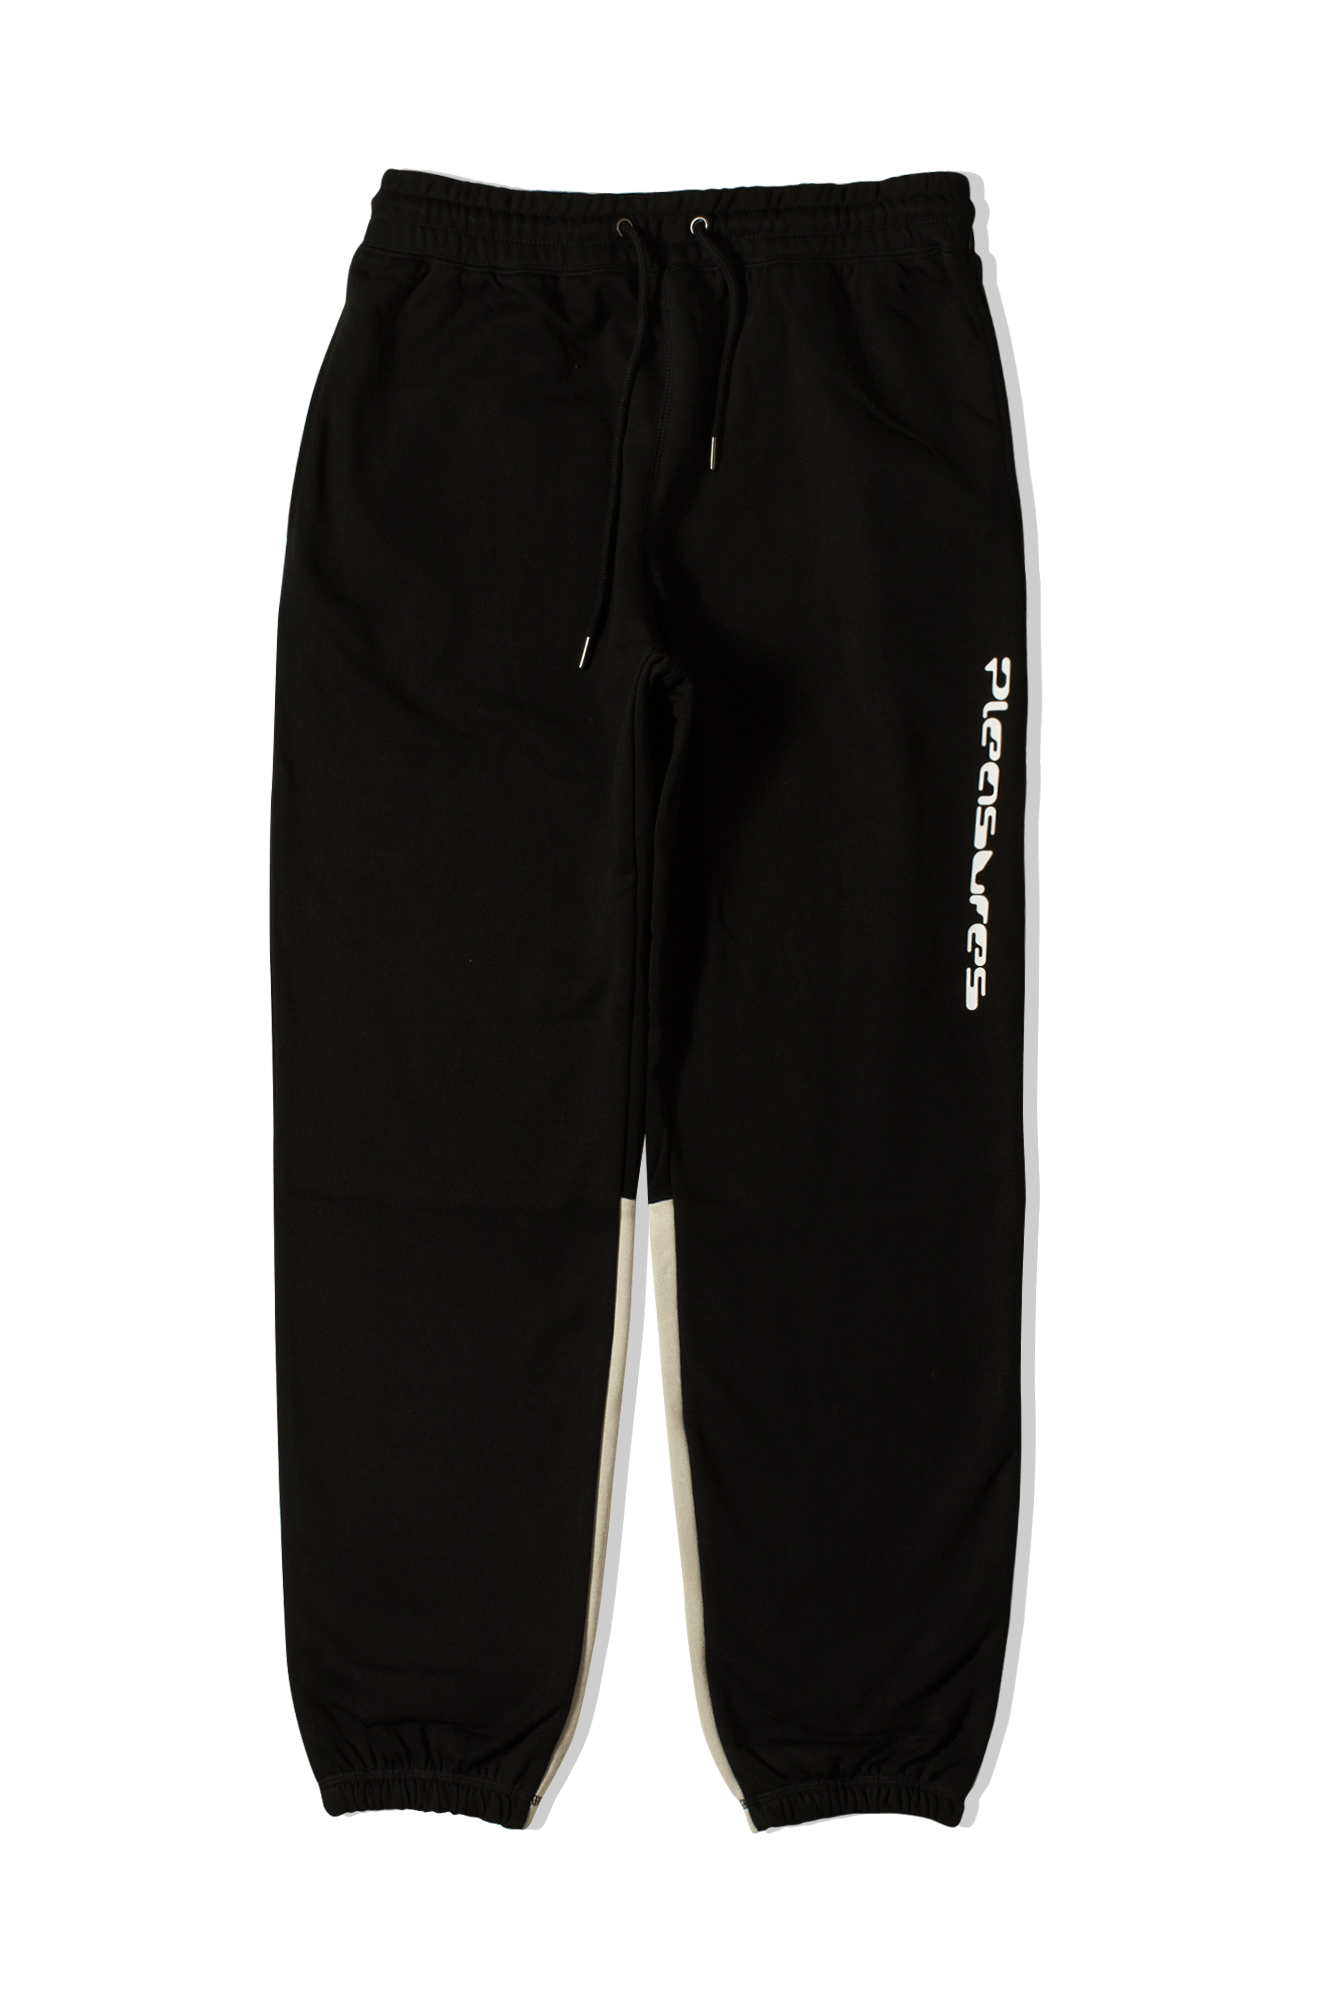 Hard Drive Sweatpants Black